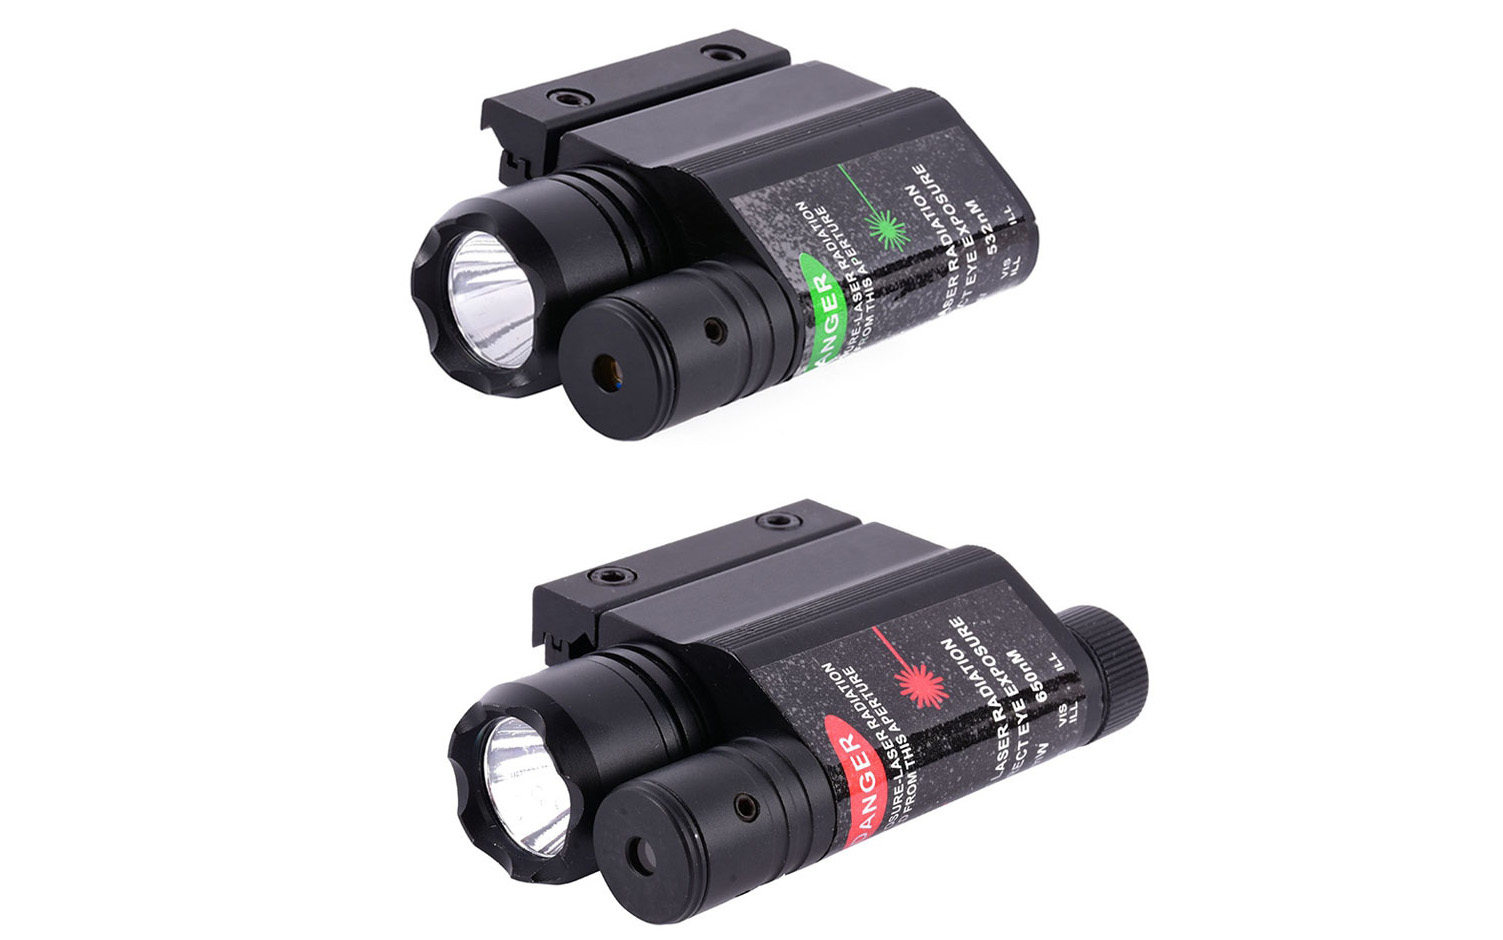 Froomer Hunting 532nm Green Laser Combo Sight Flash